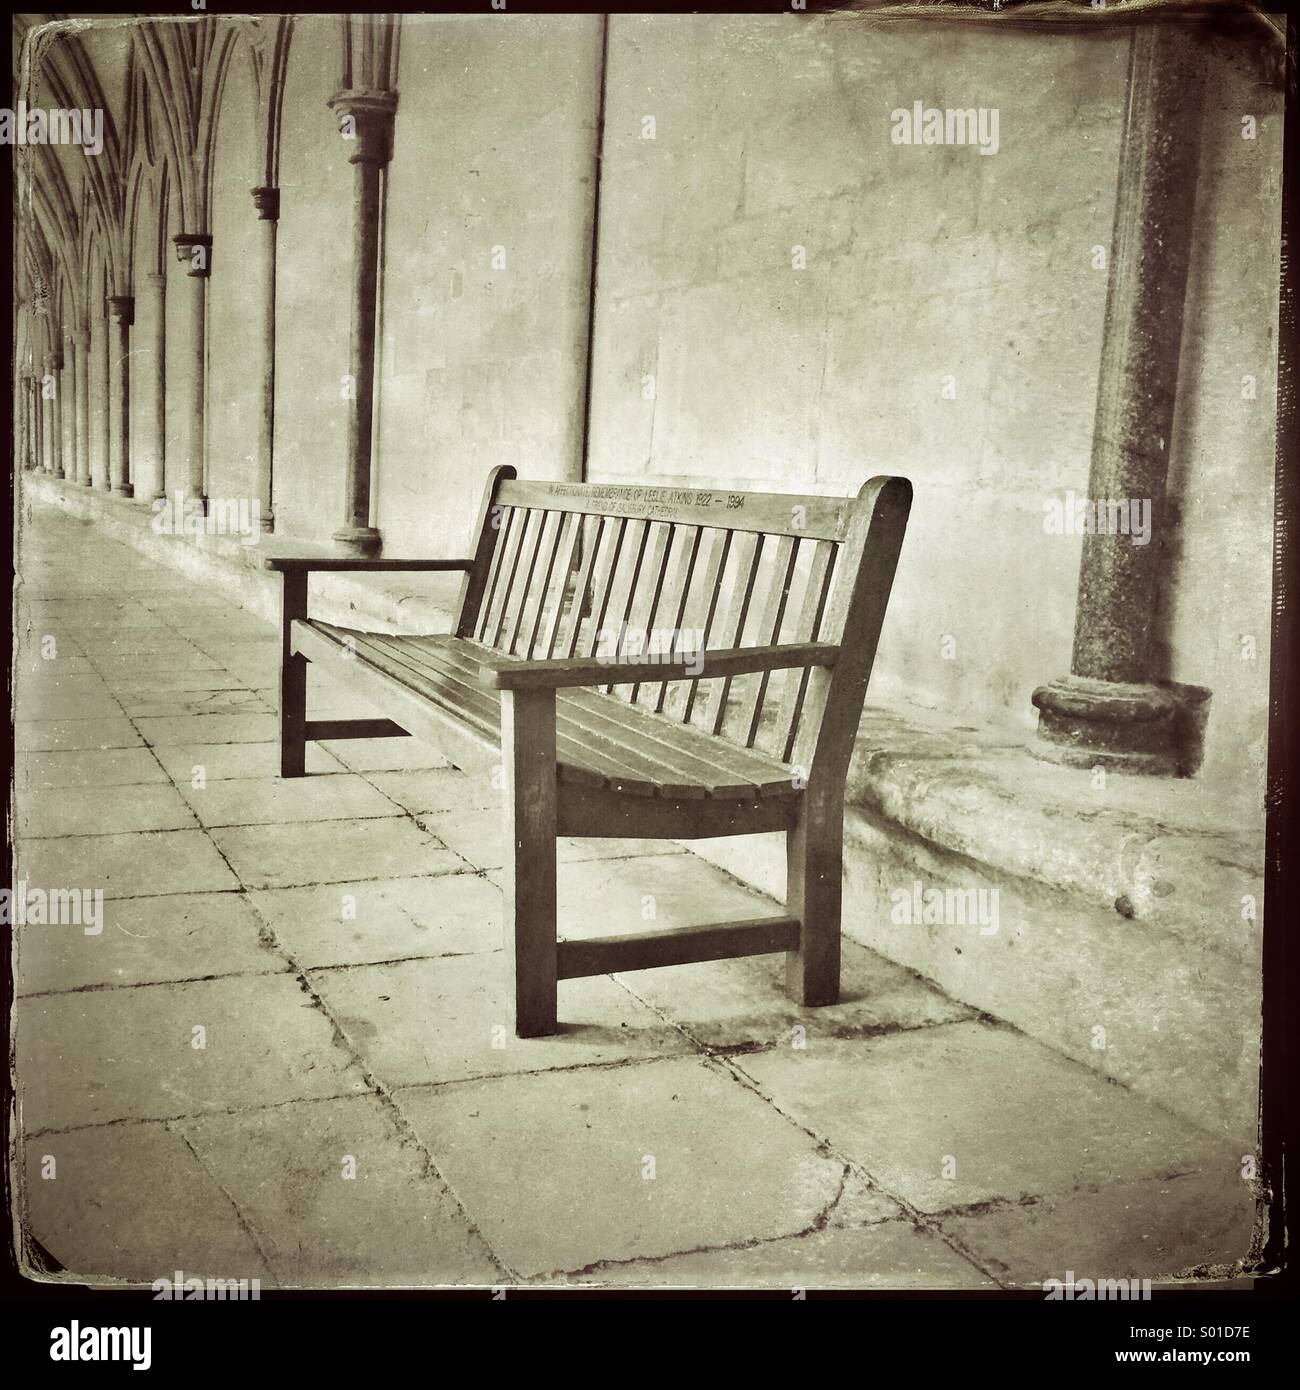 Vacant bench seat - Stock Image